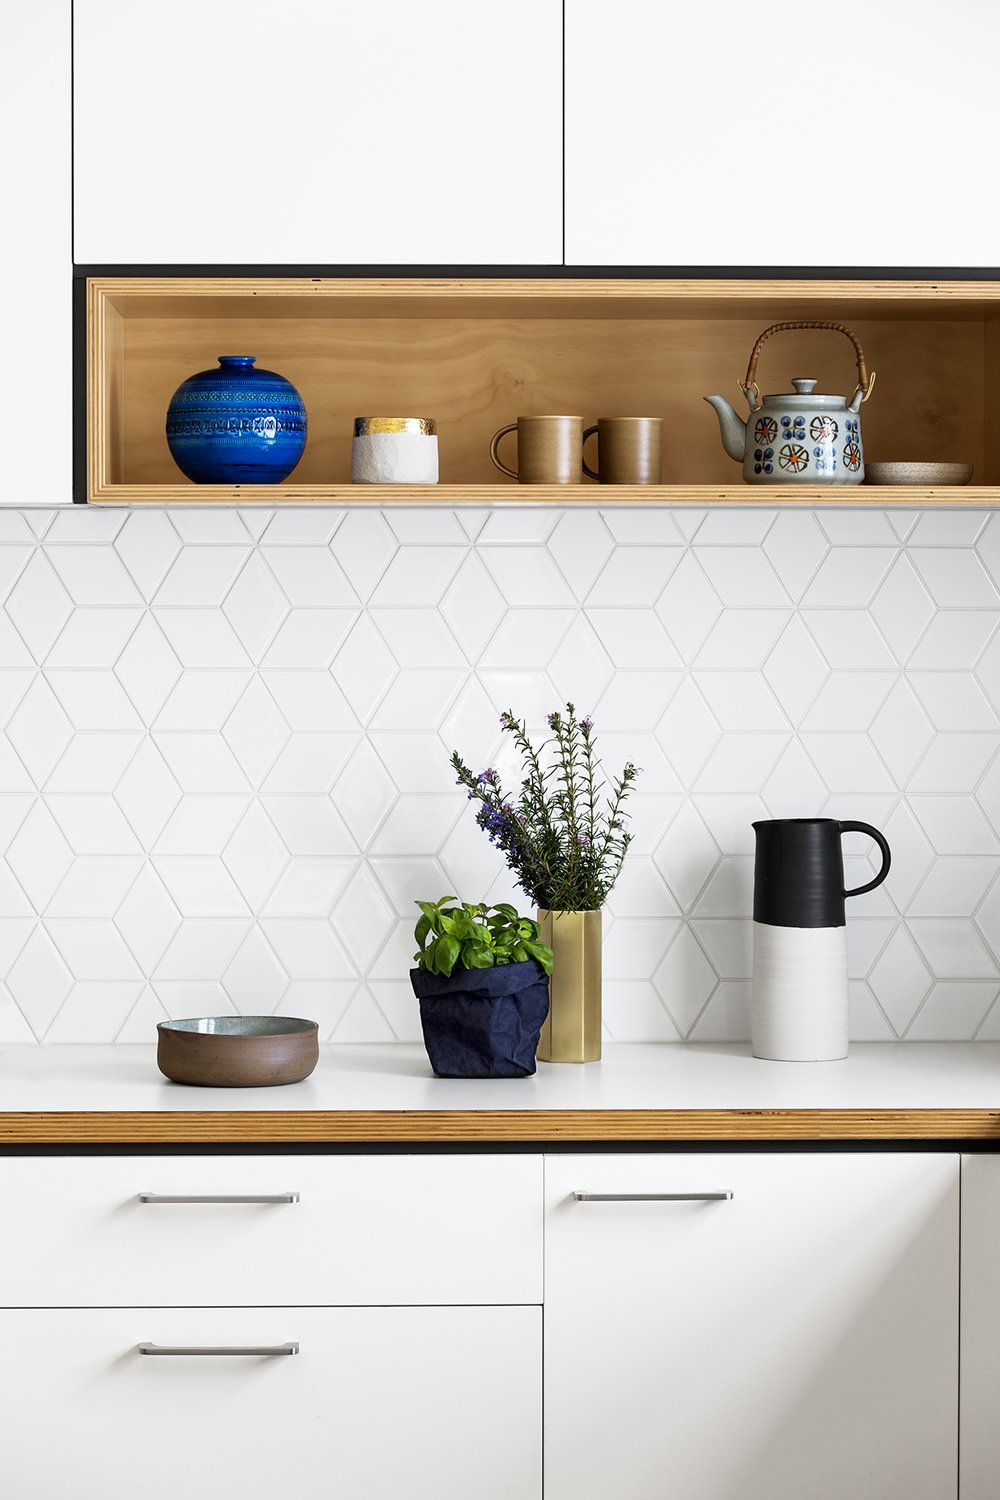 Top 5 Kitchen Trends For 2017 Adore Home Magazine Modern Kitchen Backsplash White Modern Kitchen Modern Kitchen